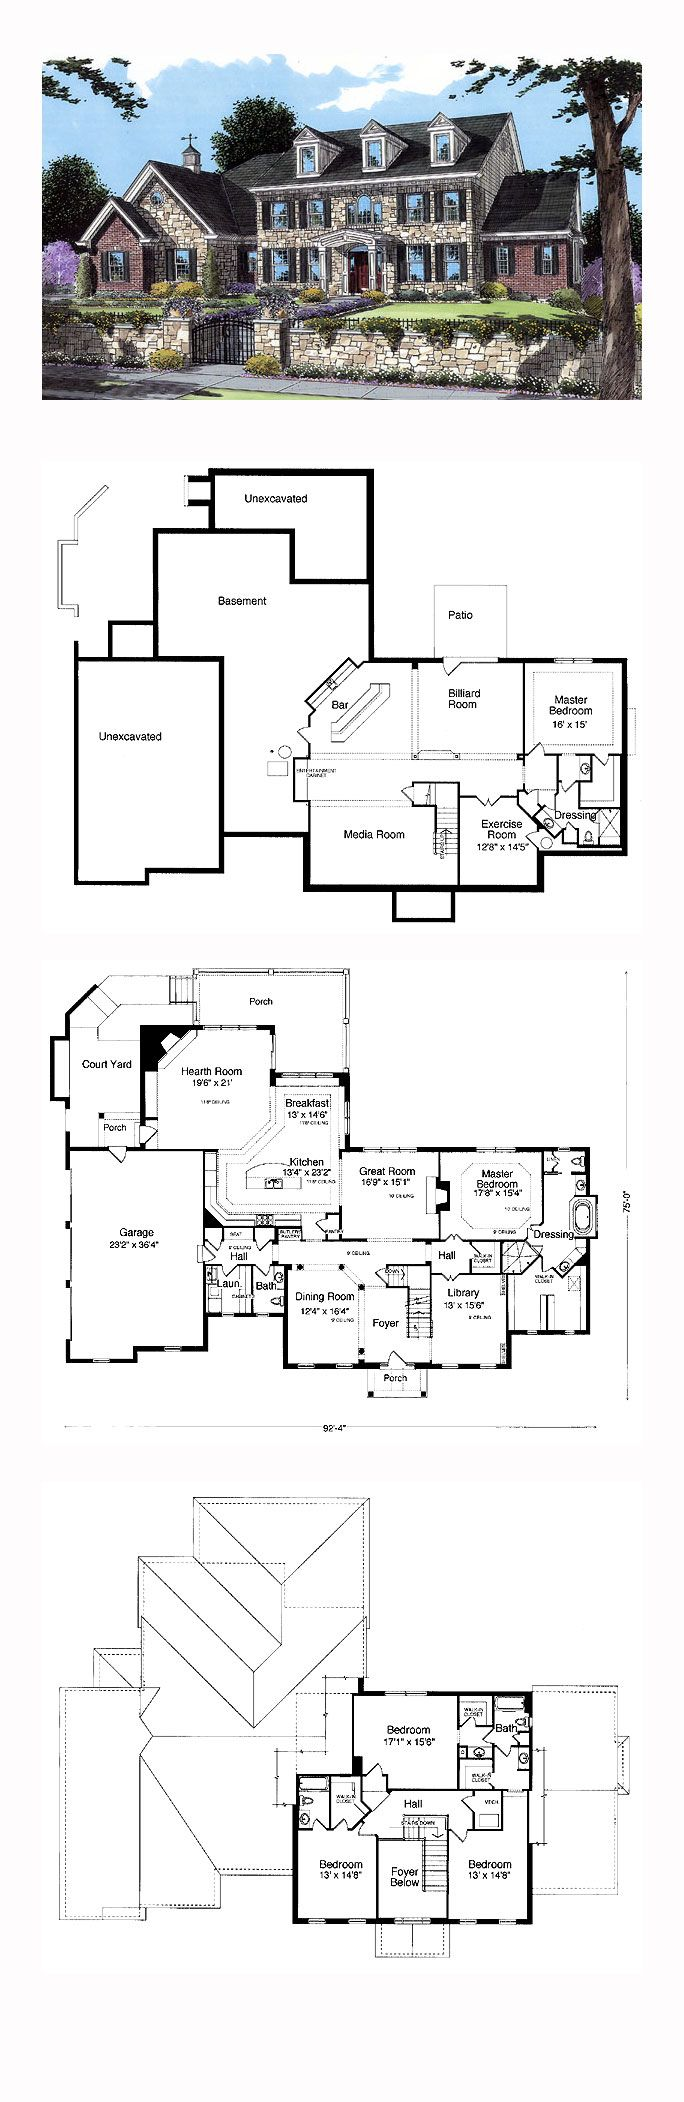 25 best cool house plans ideas on pinterest house layout plans cool house plan id chp 24943 total living area 4222 sq